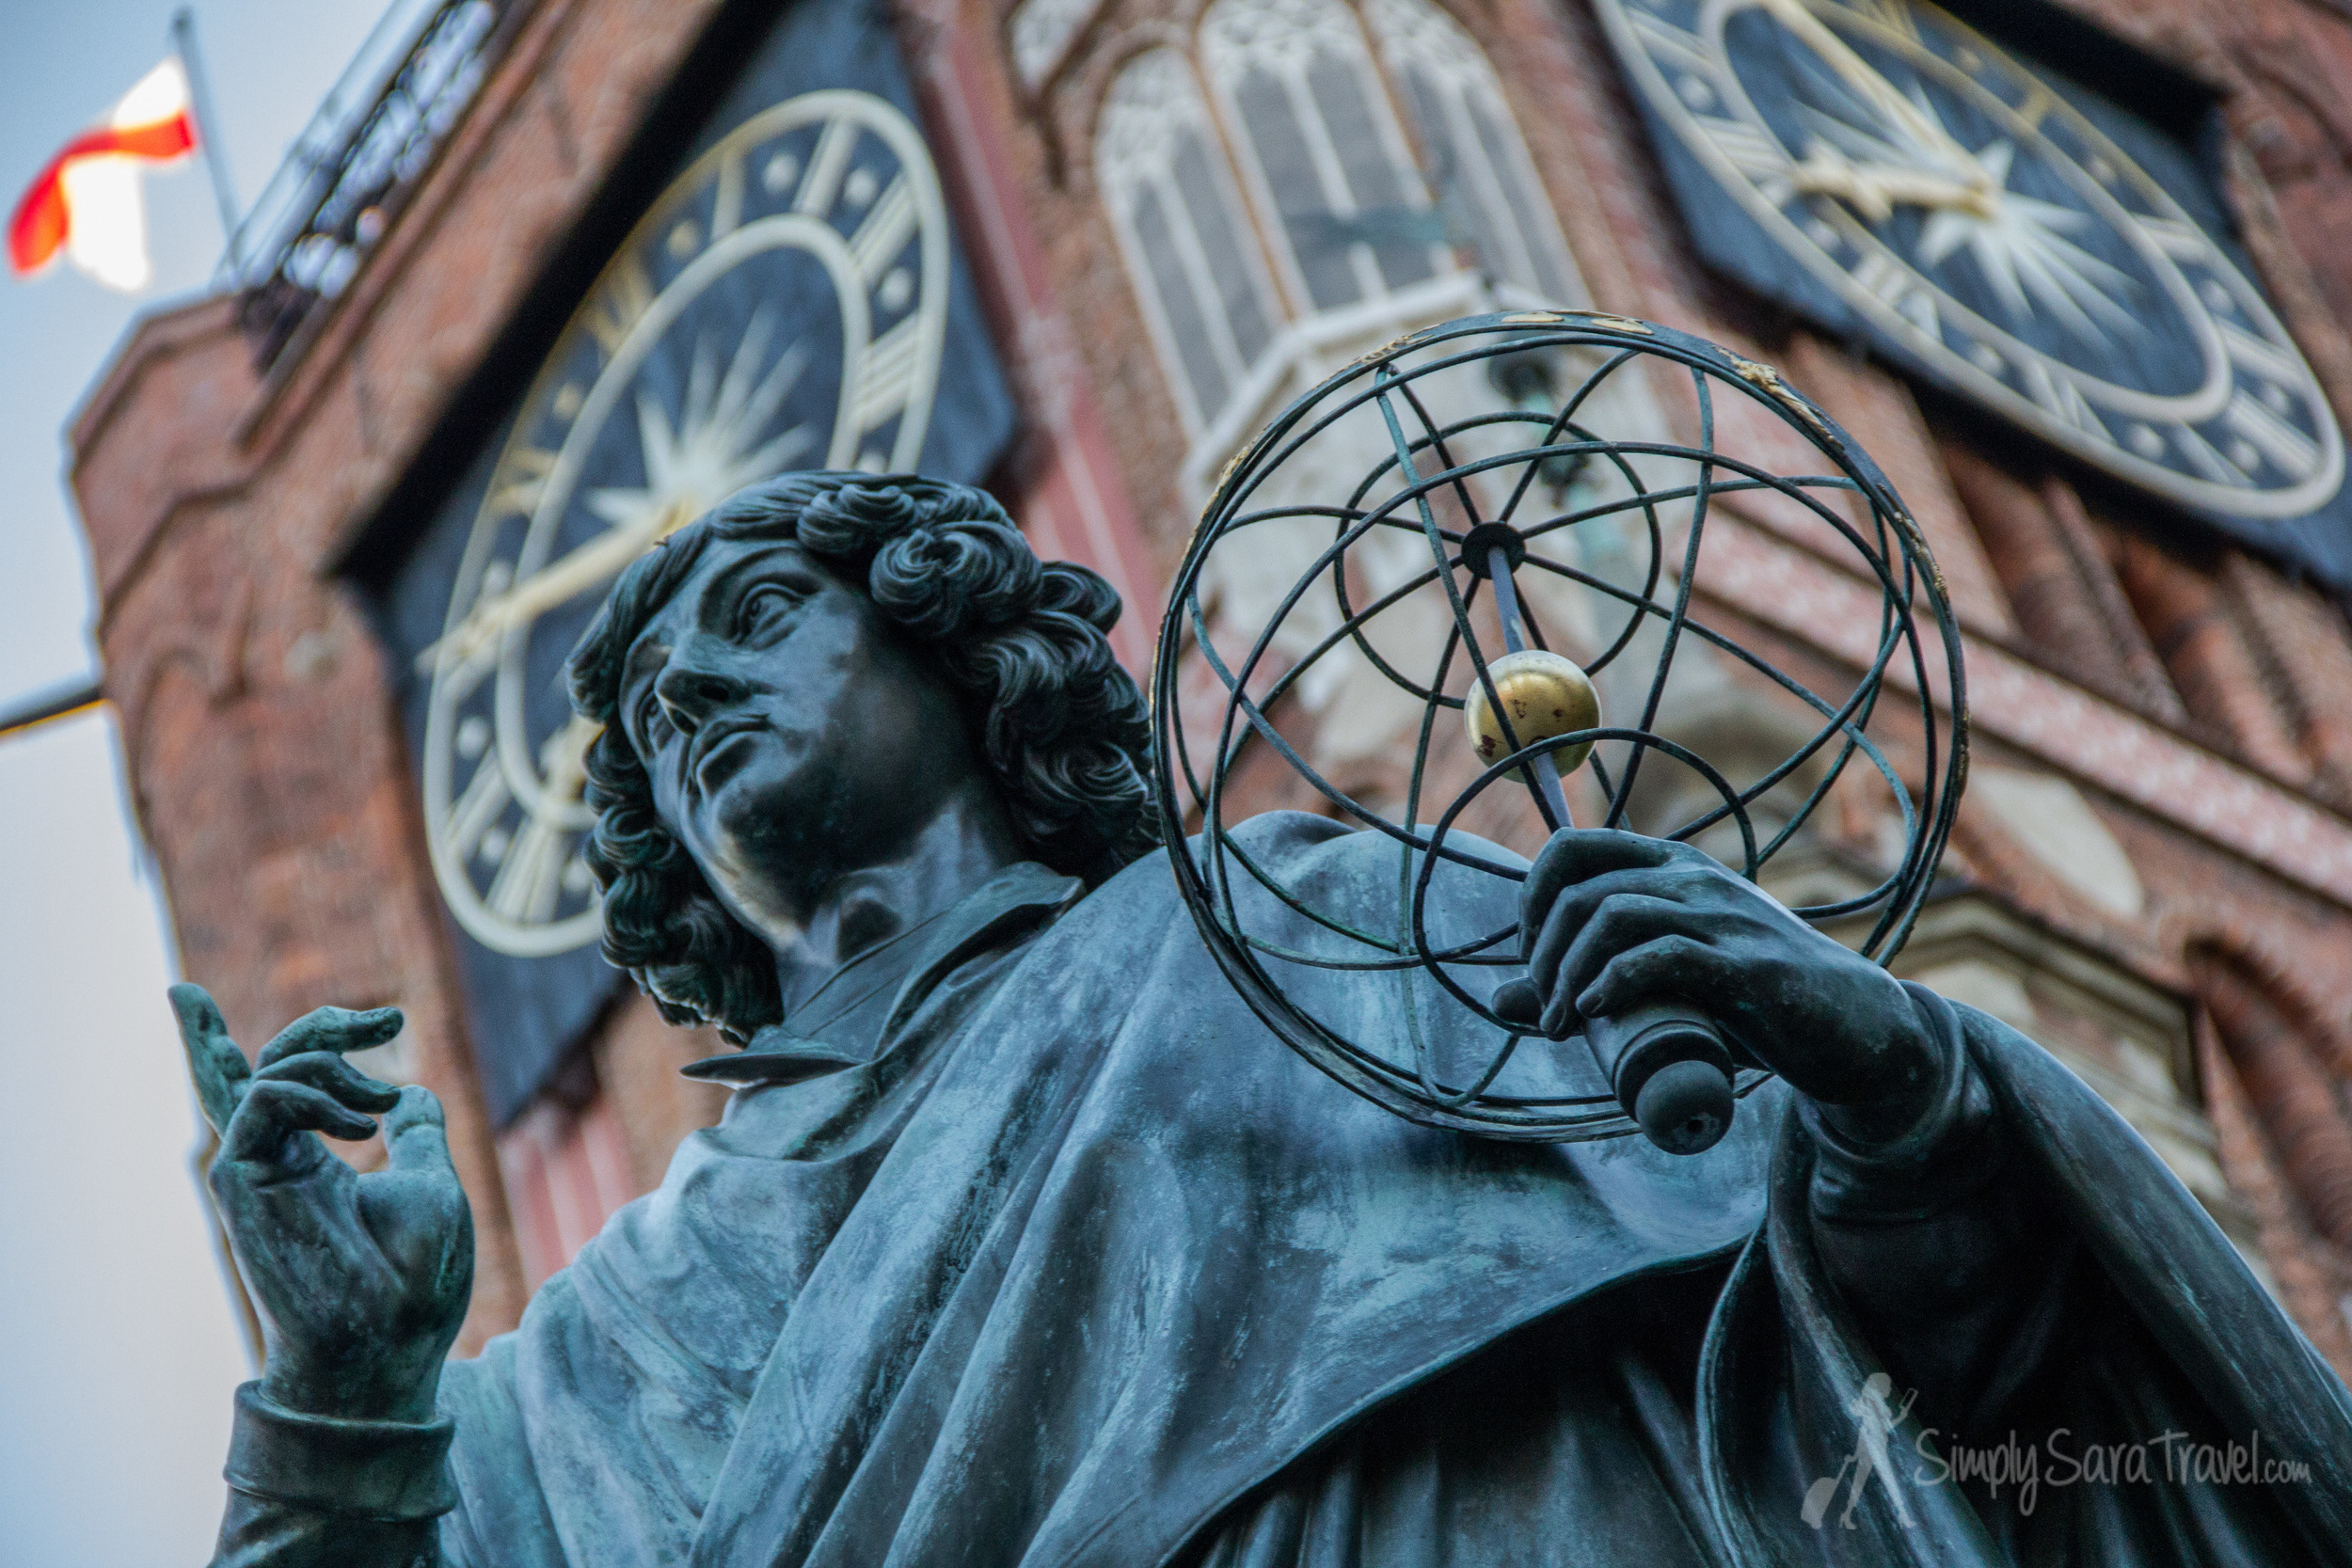 Toruń's most famous homeboy, Nicholas Copernicus, showing his theory that the sun (not the earth) is at the center of the universe